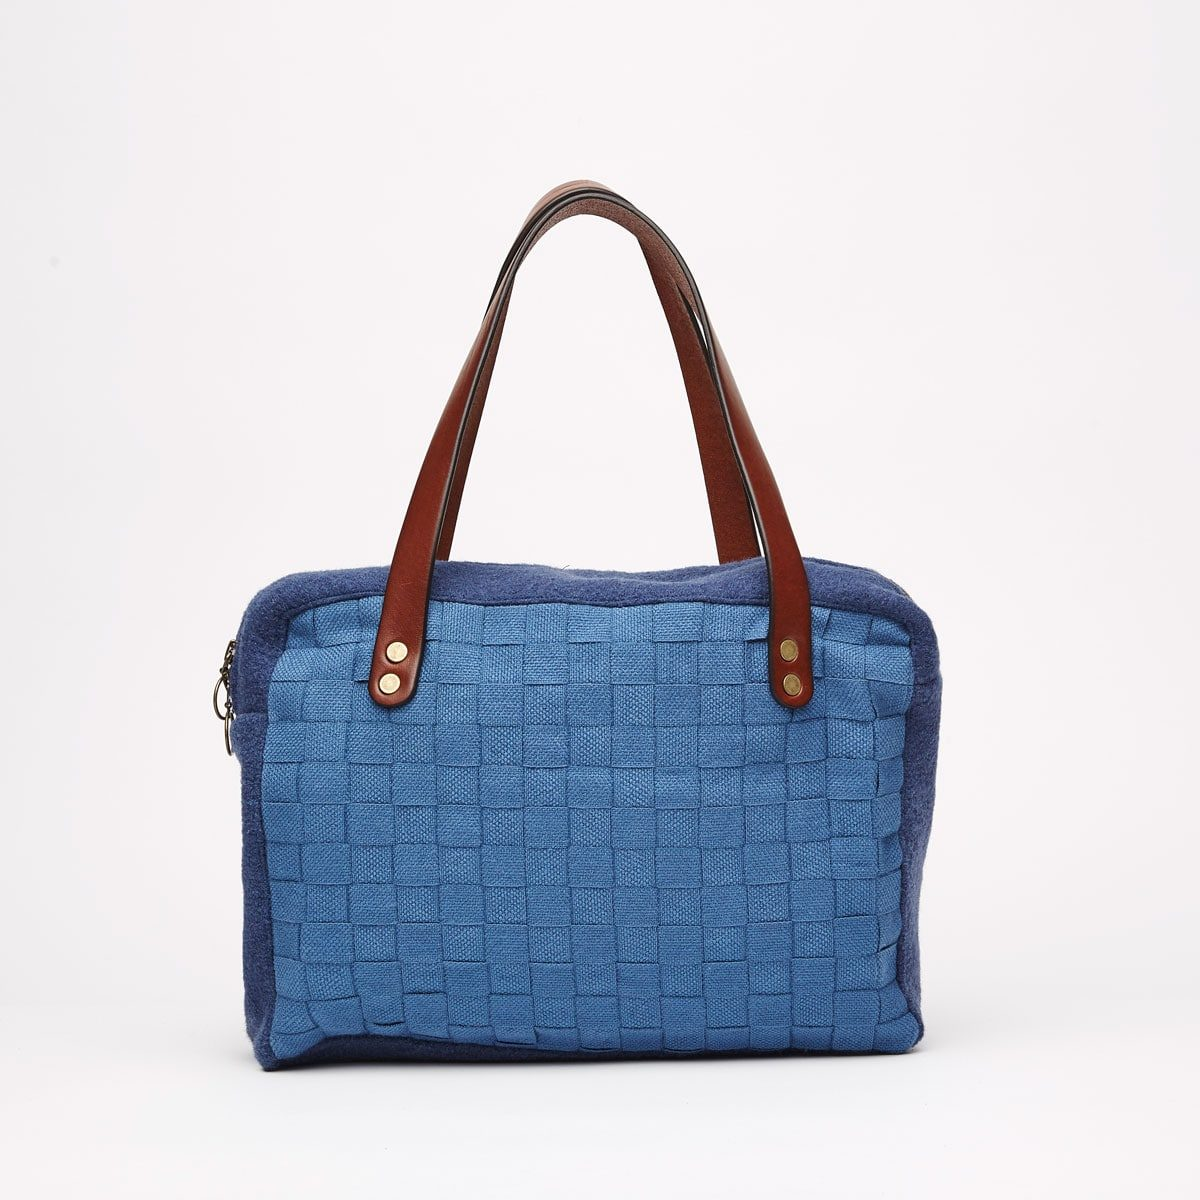 FW1819LC1 5 front min 1200x1200 - Woolness